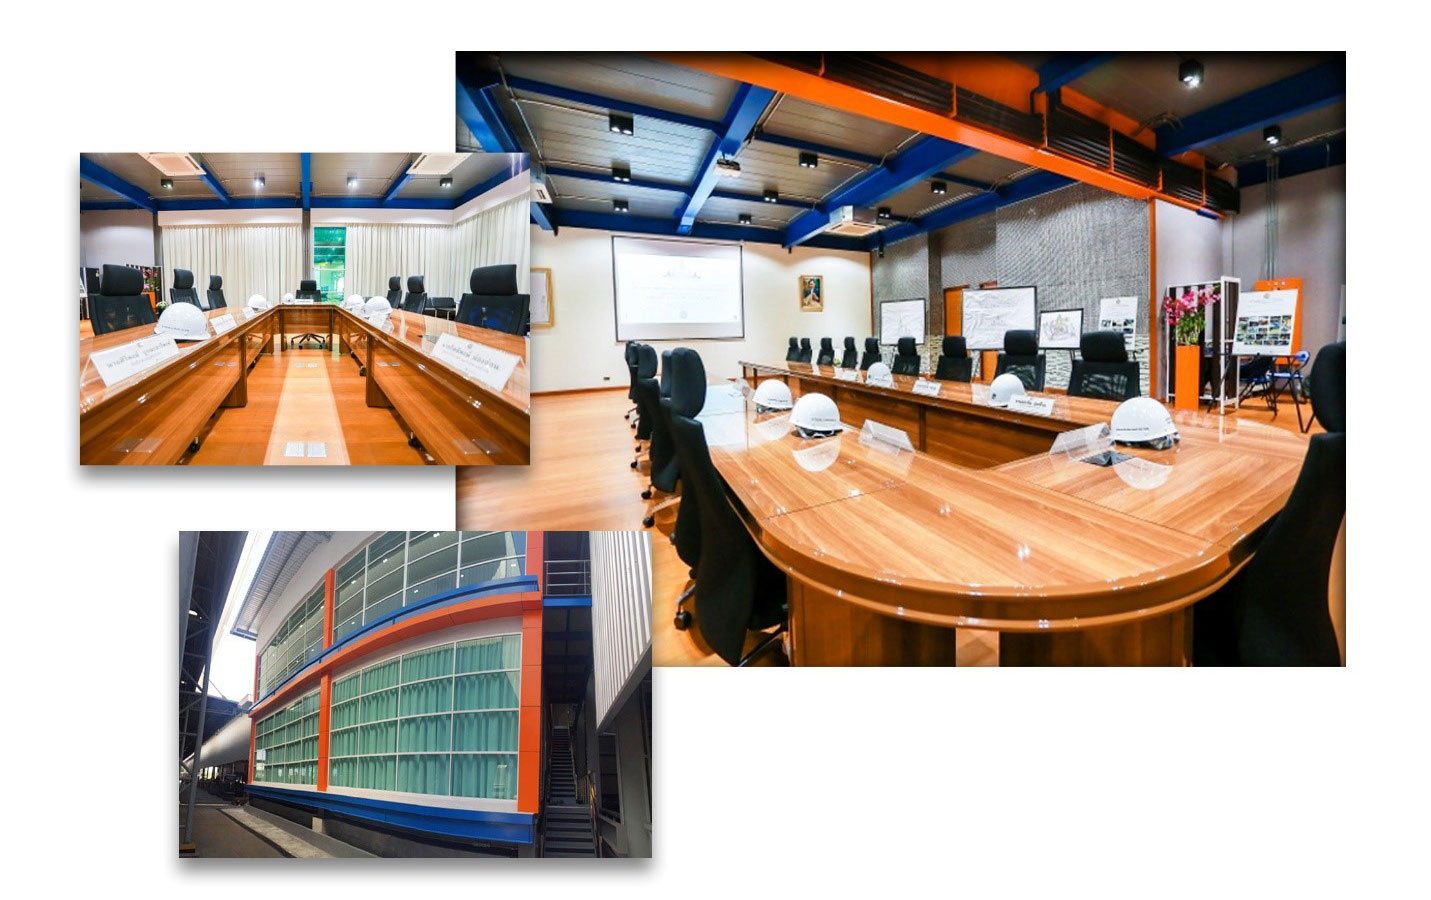 QC BUILDING & MEETING ROOM